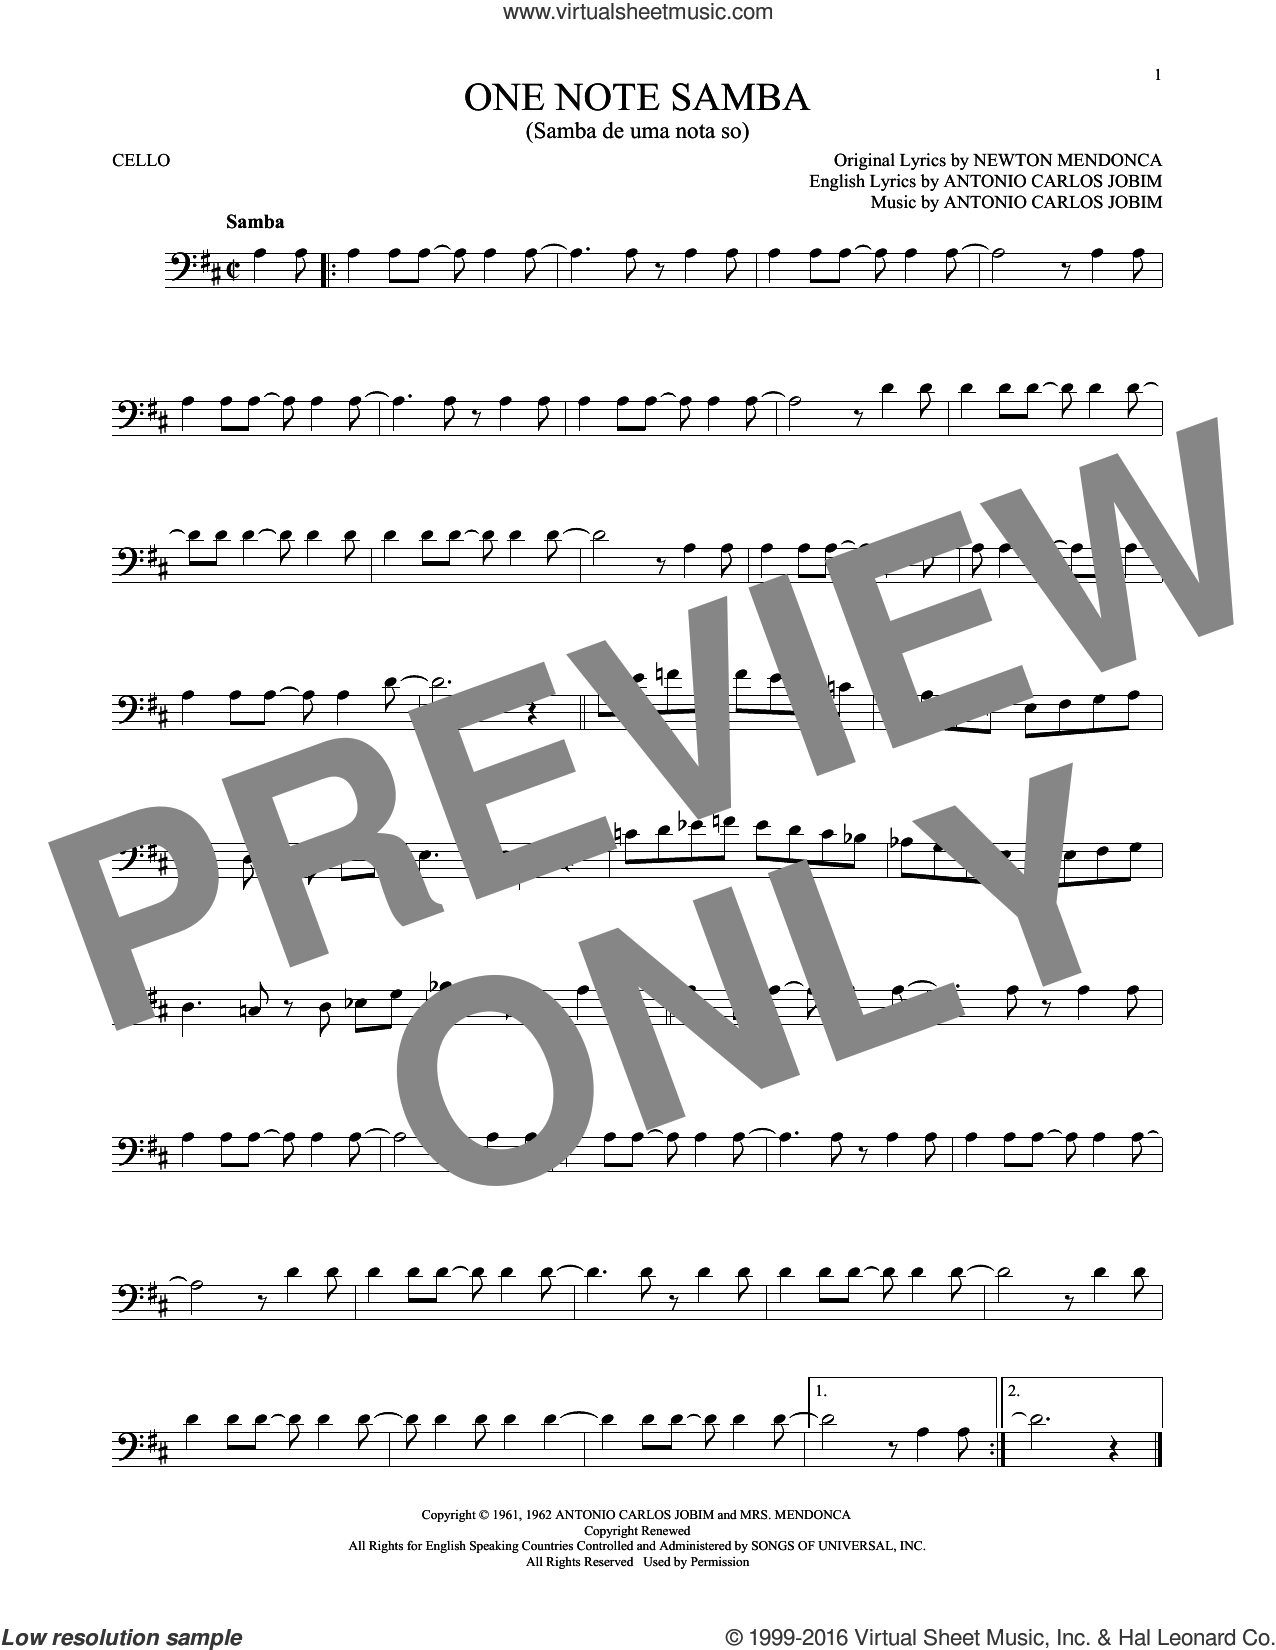 One Note Samba (Samba De Uma Nota So) sheet music for cello solo by Antonio Carlos Jobim, Pat Thomas and Newton Mendonca, intermediate skill level